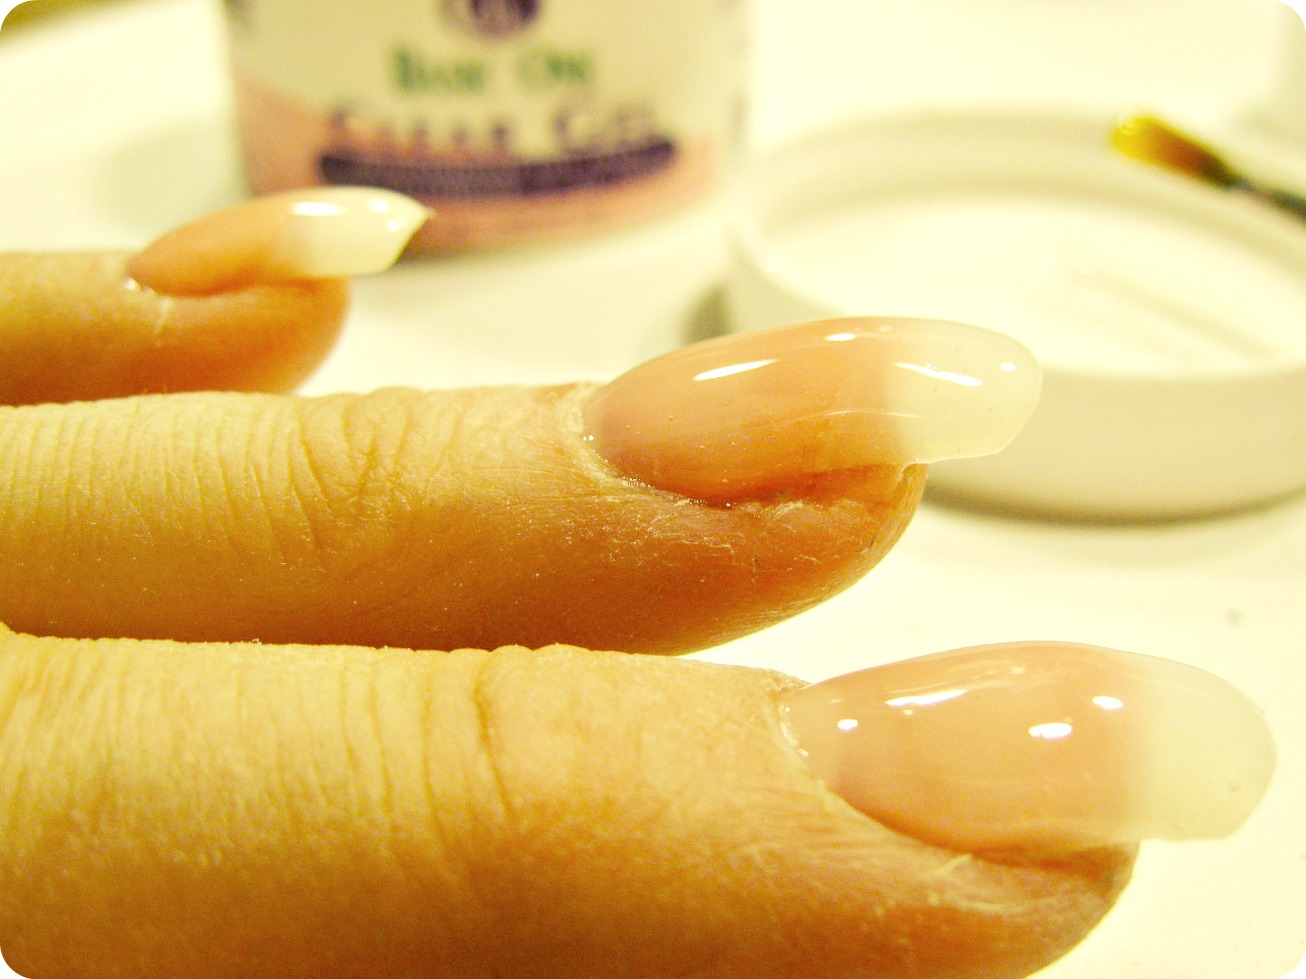 Make It With Me: Plain Gel Nails